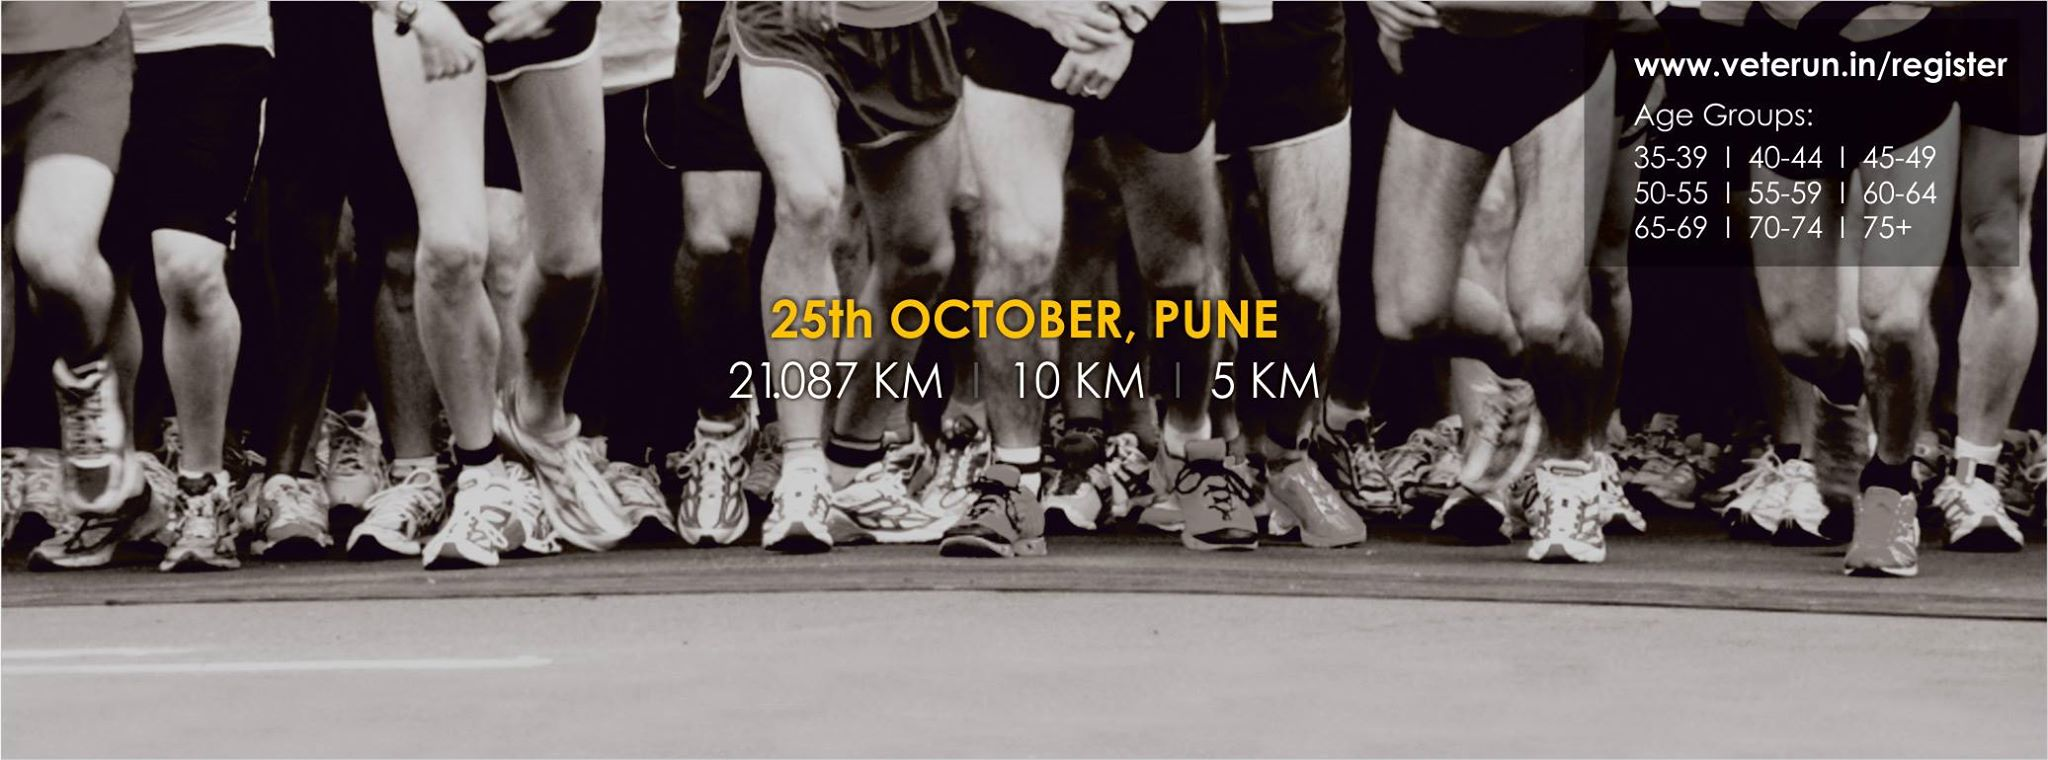 Book Online Tickets for VETERUN, Pune. A Unique Half Marathon for Veterans / Masters!